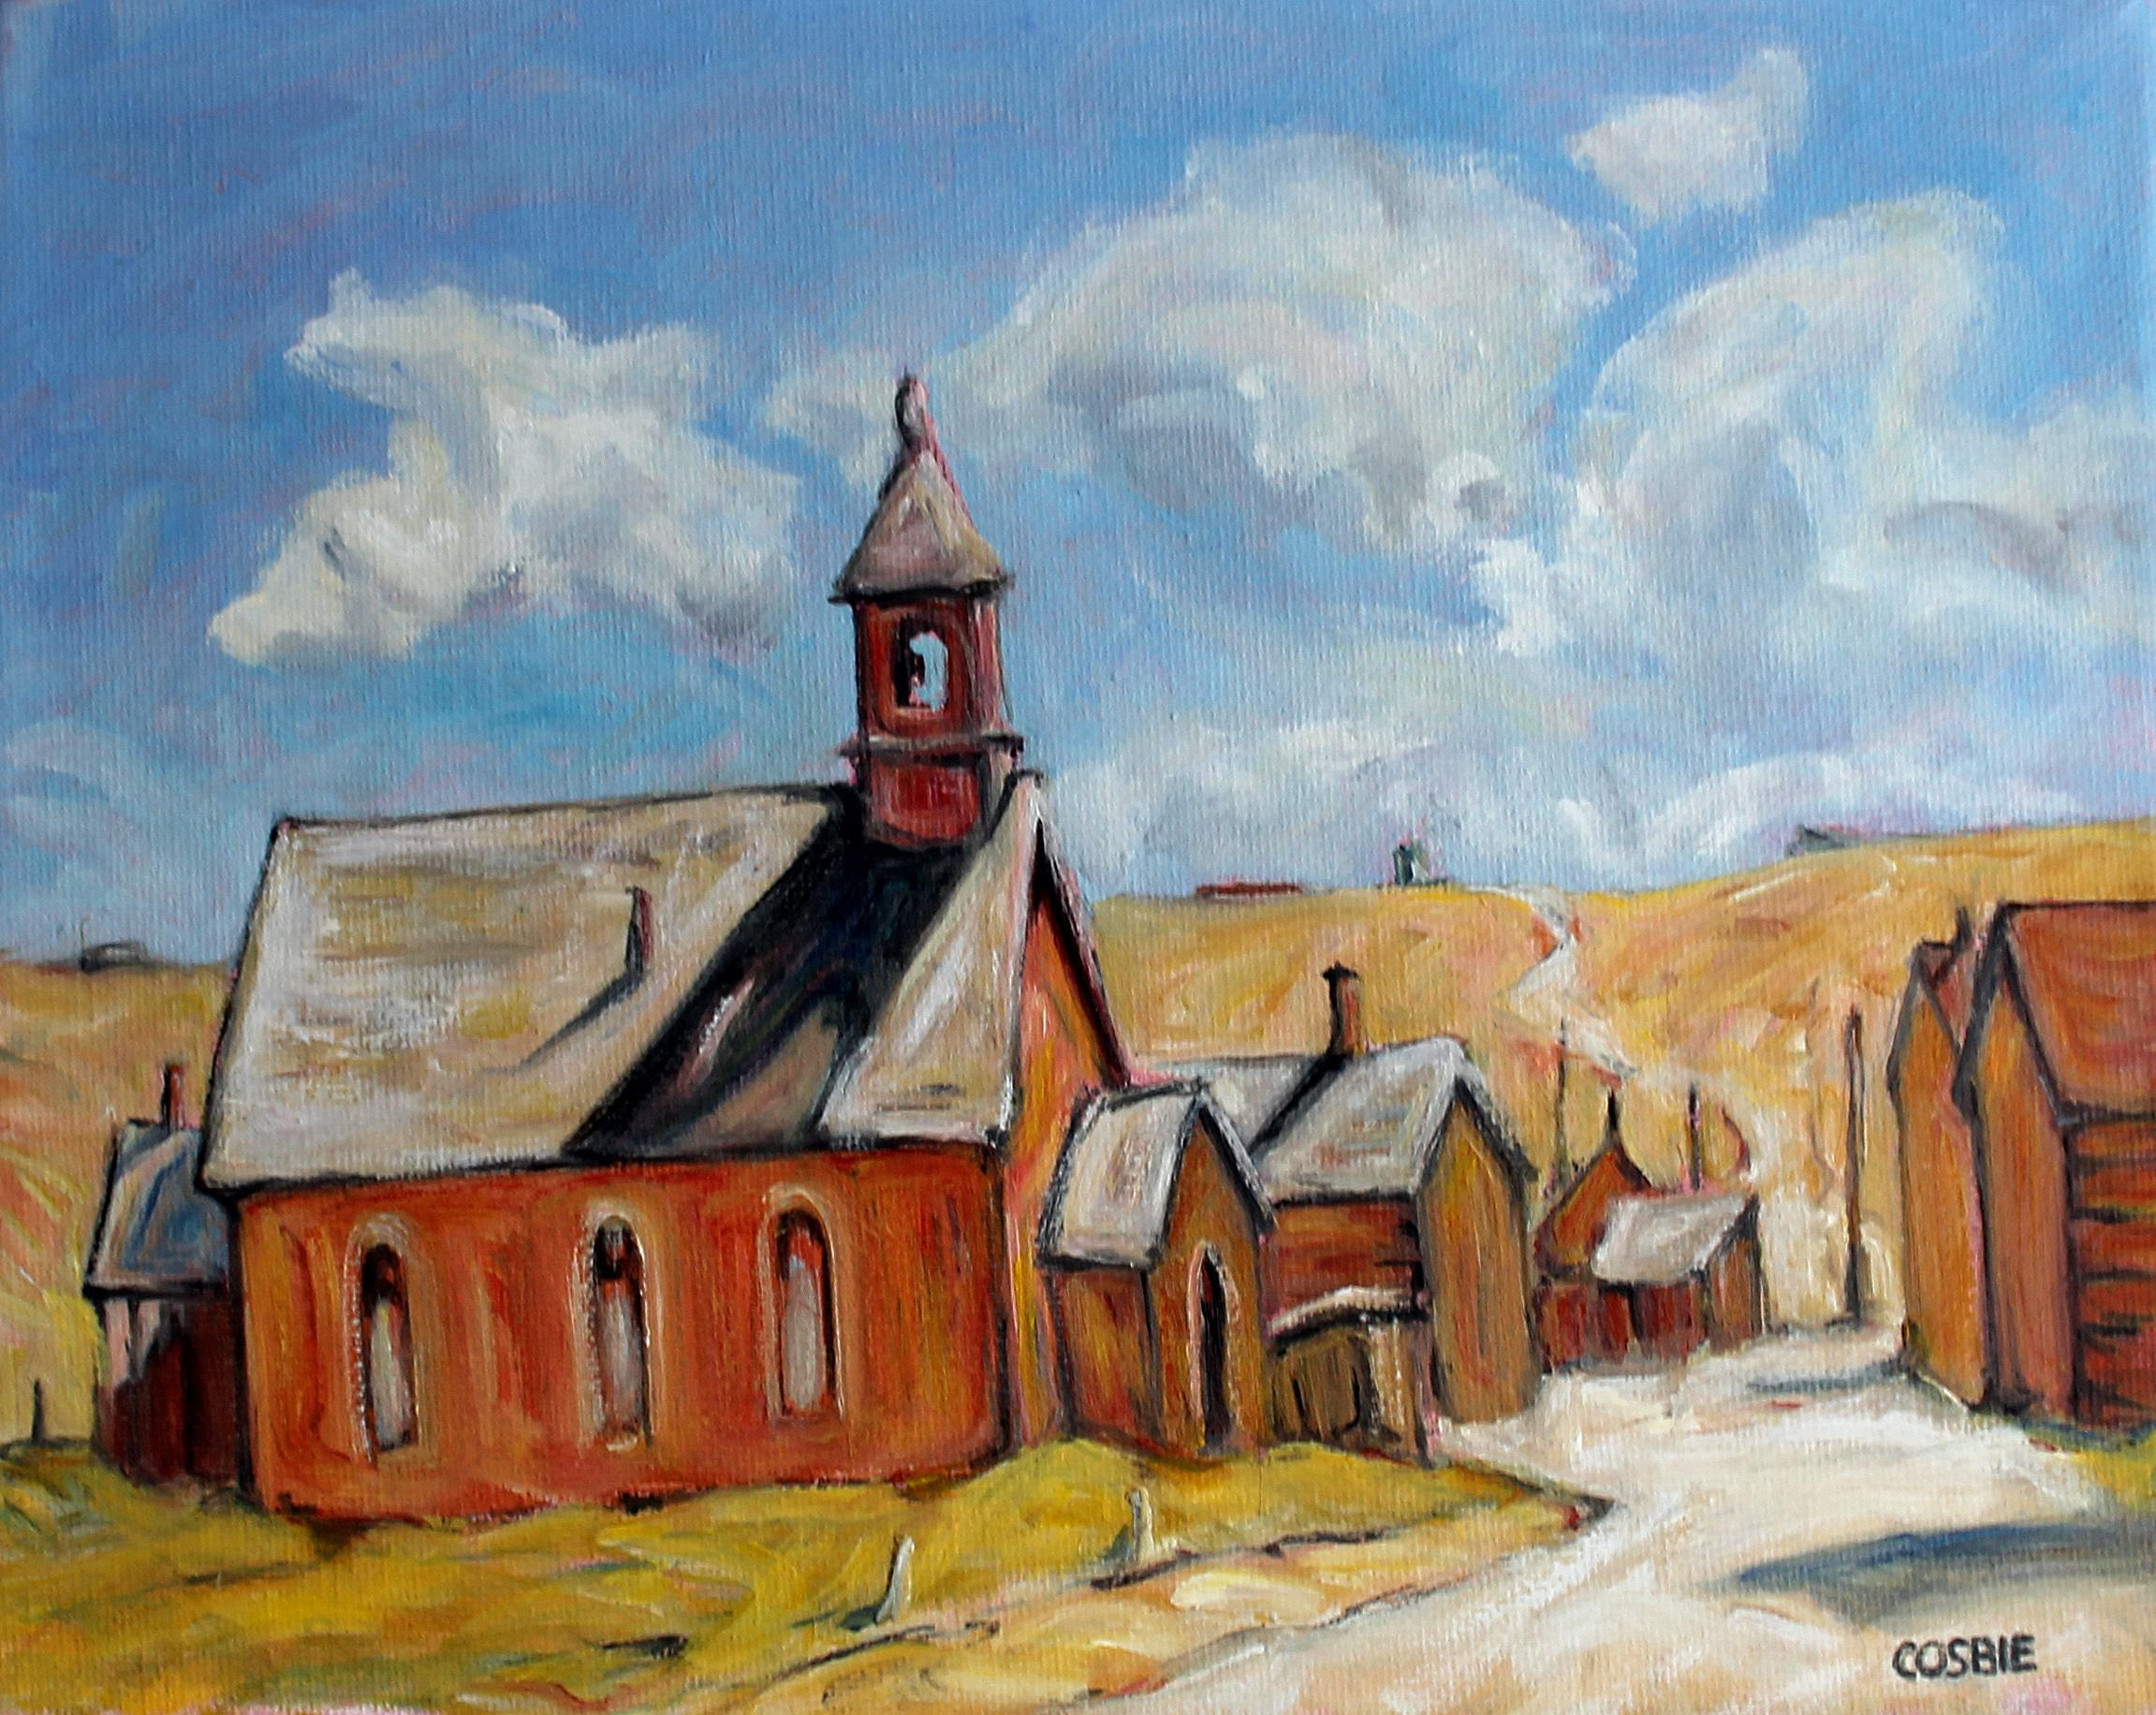 Green Street, Bodie, California, Oil Painting